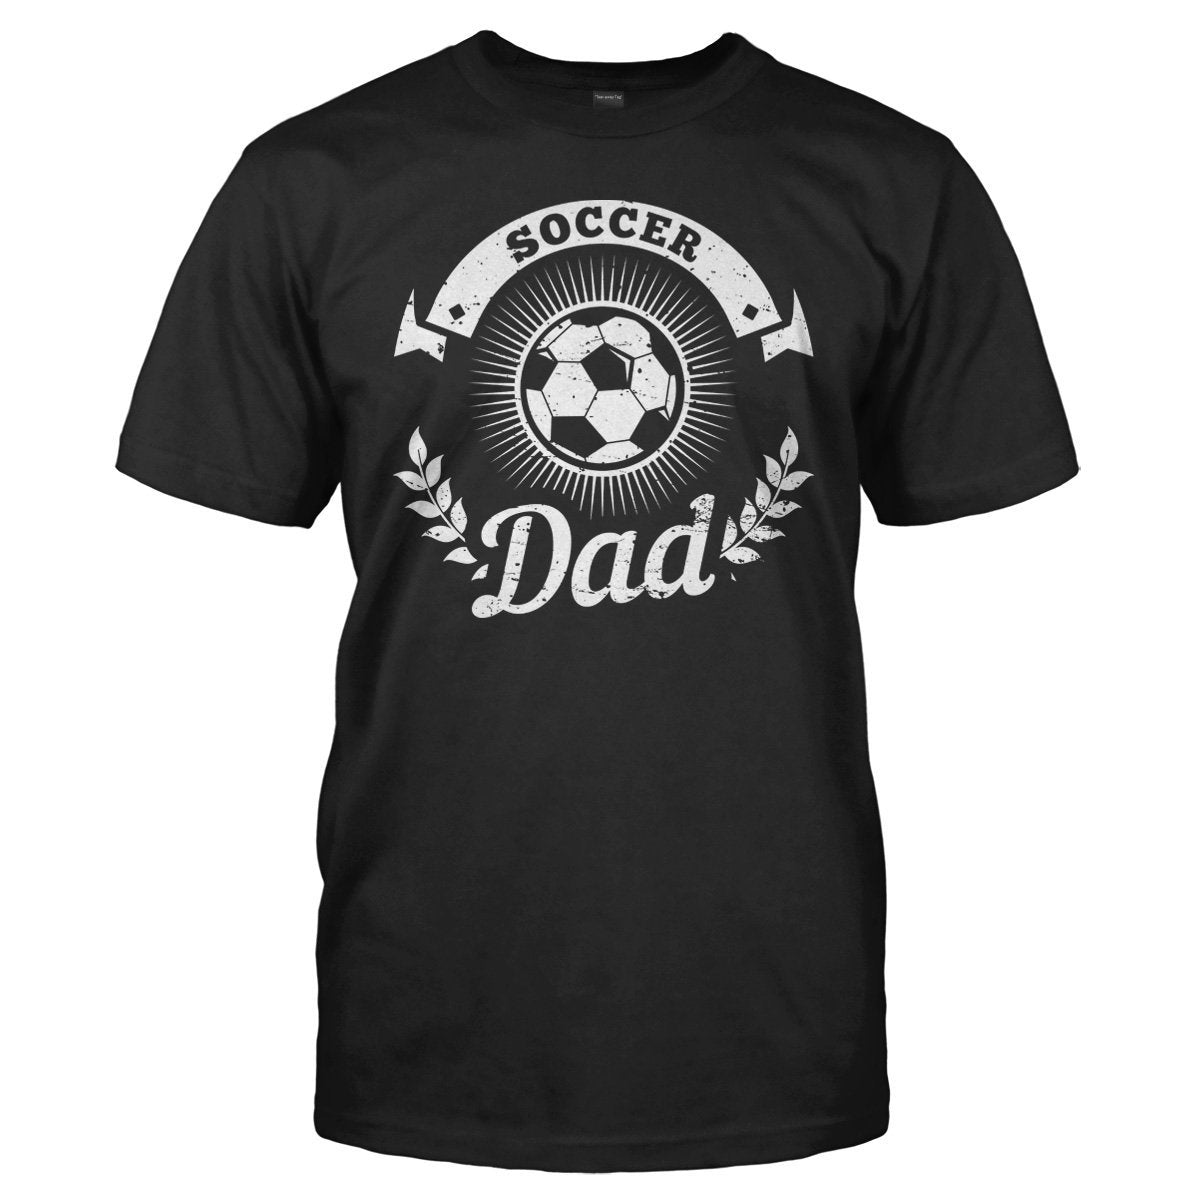 Soccer Dad - T Shirt